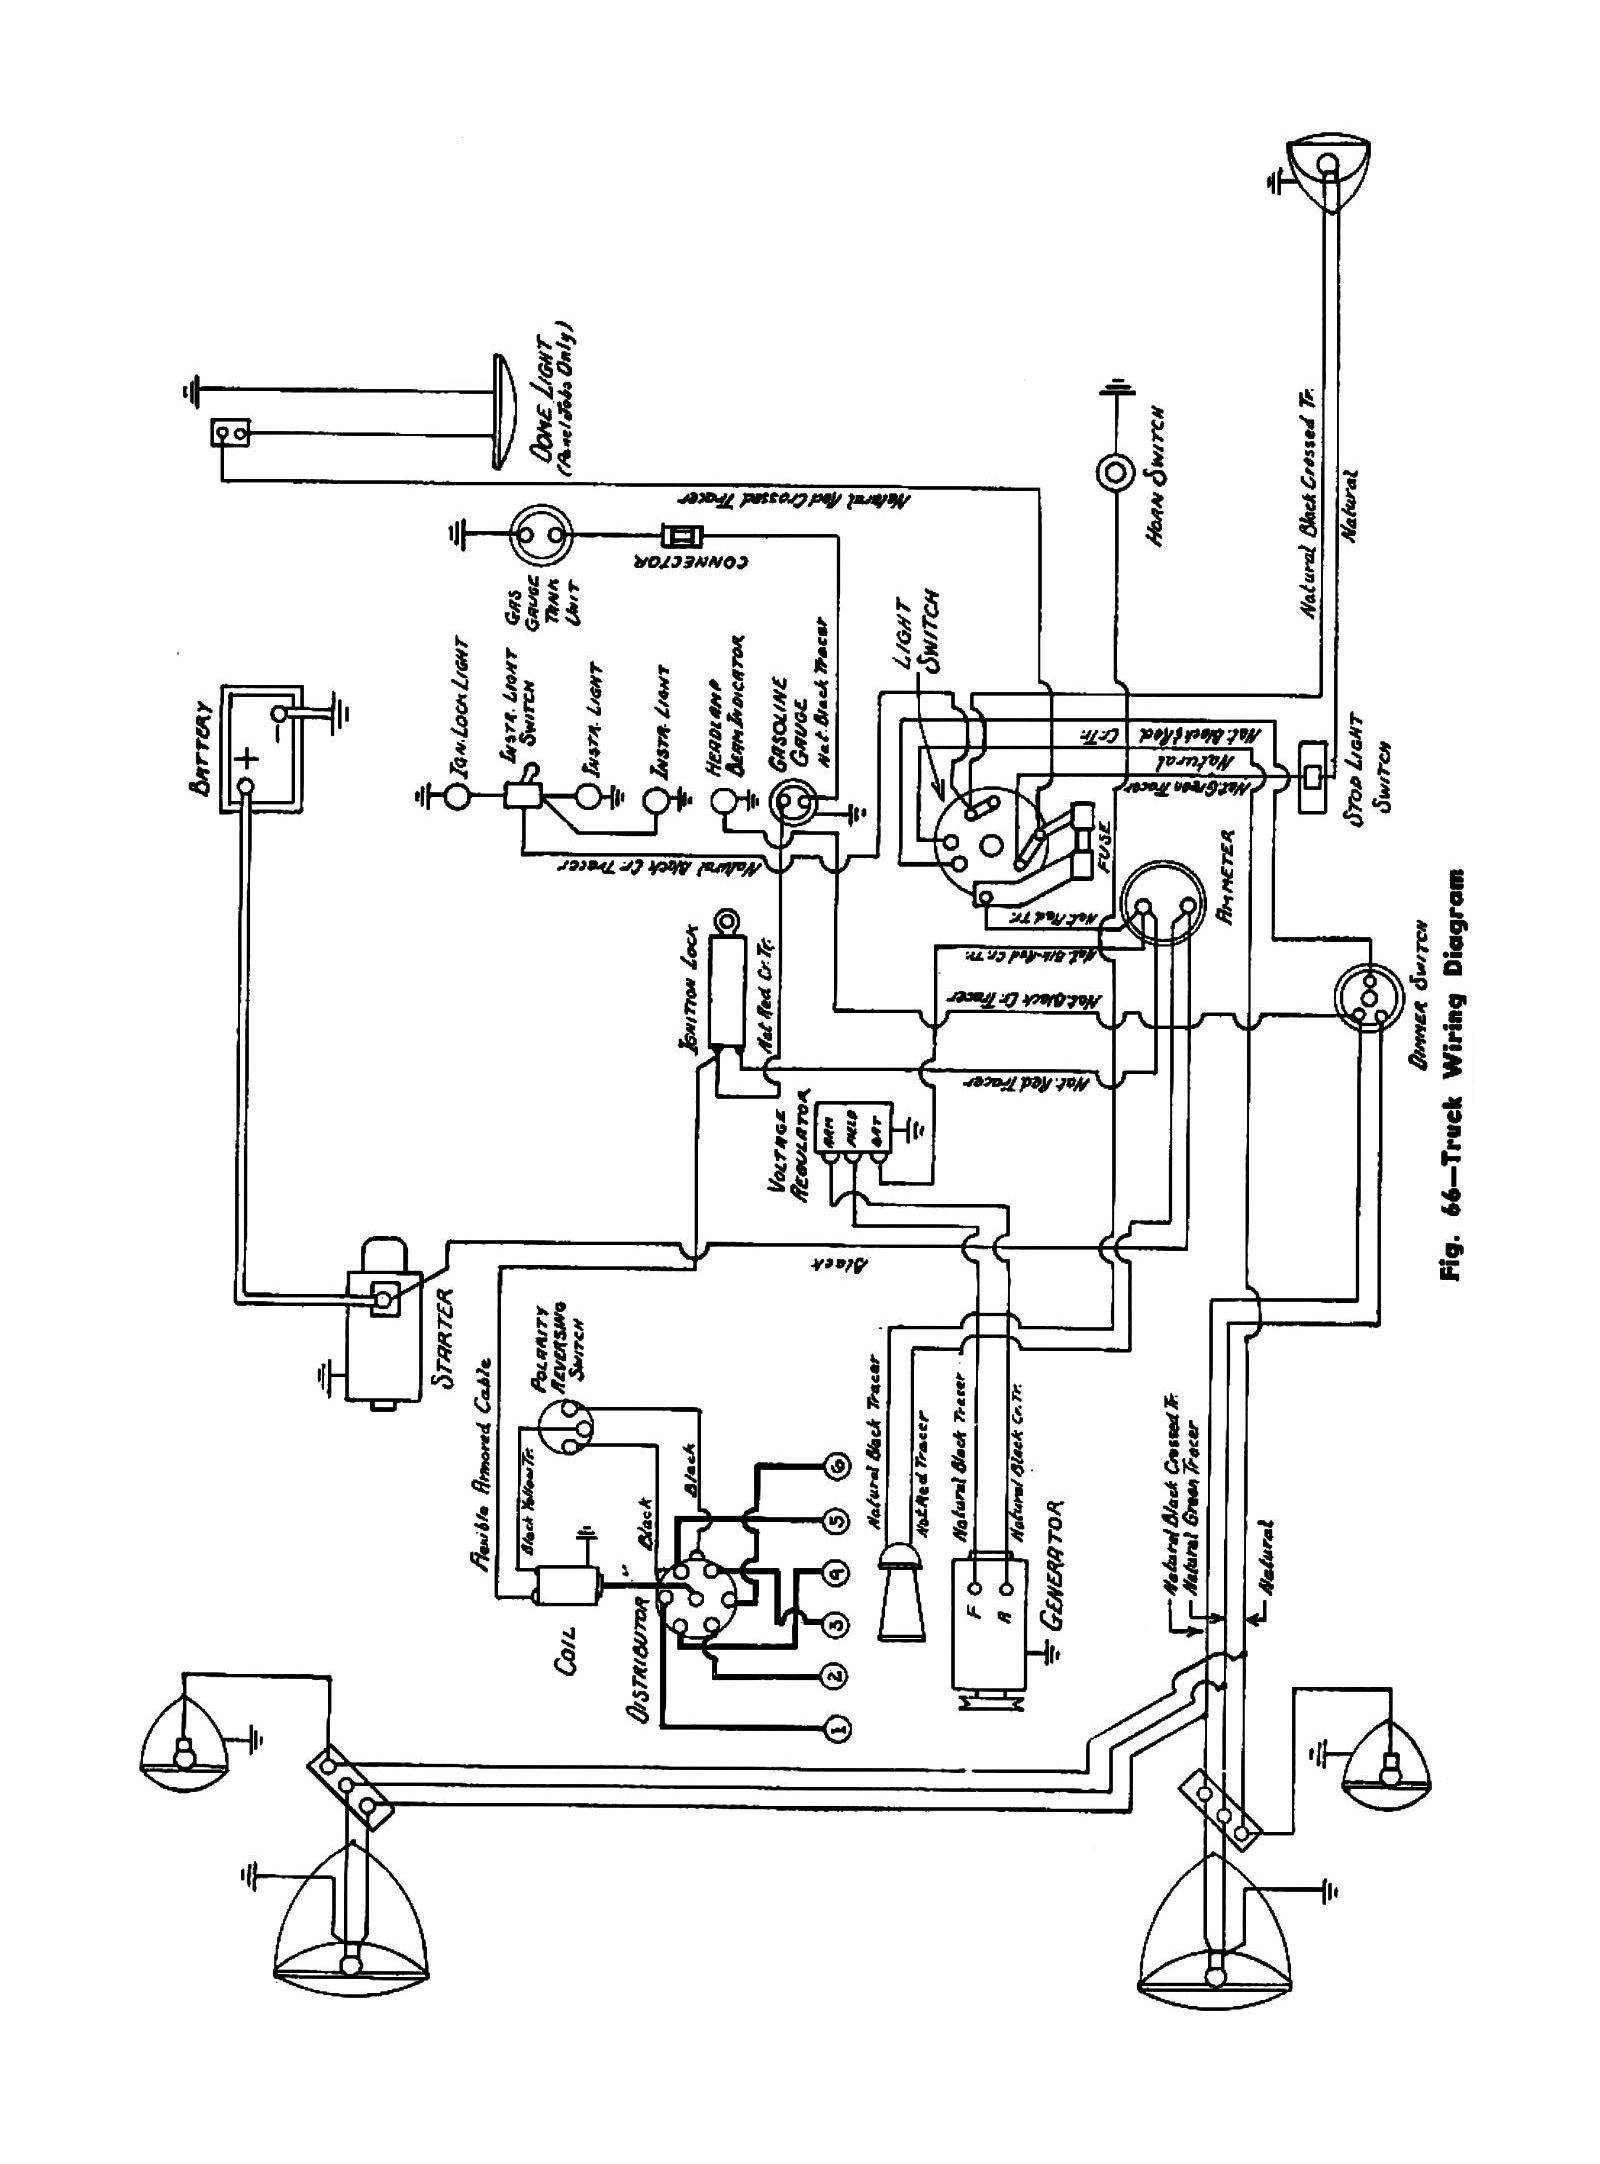 45truck ihc truck wiring diagrams mazda truck wiring diagrams \u2022 free  at panicattacktreatment.co